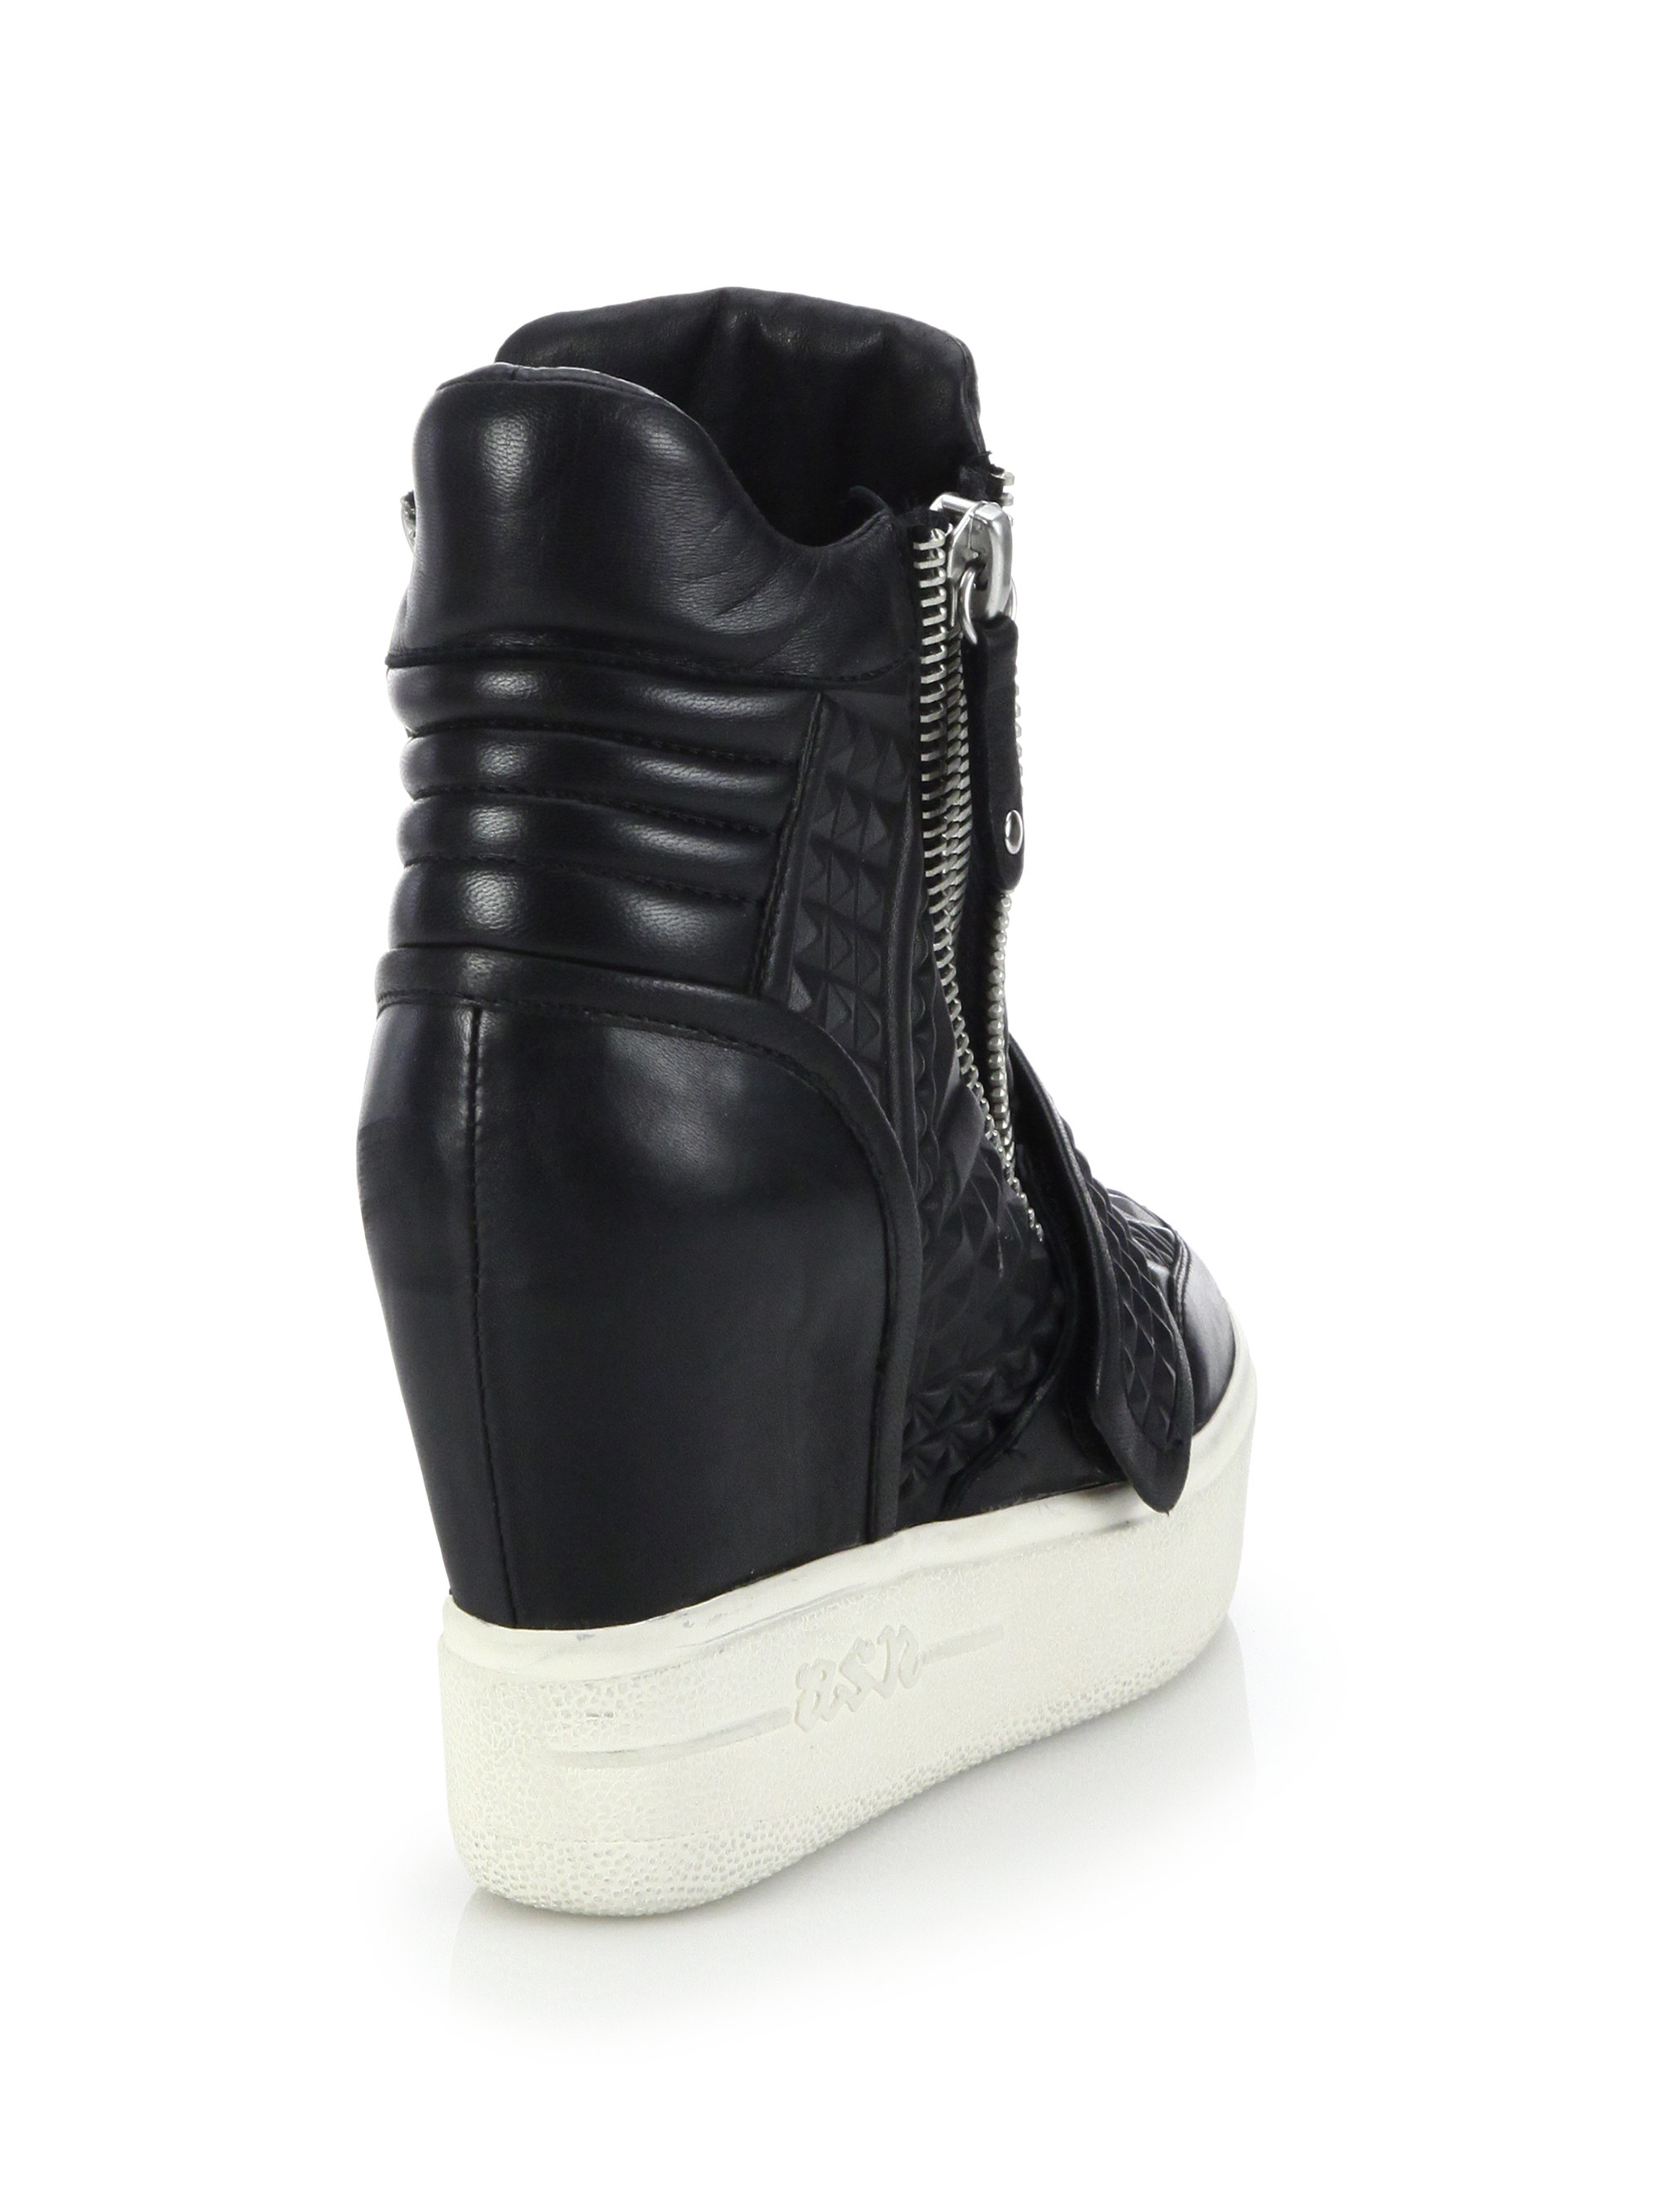 Lyst - Ash Action Embossed Leather Wedge Sneakers in Black